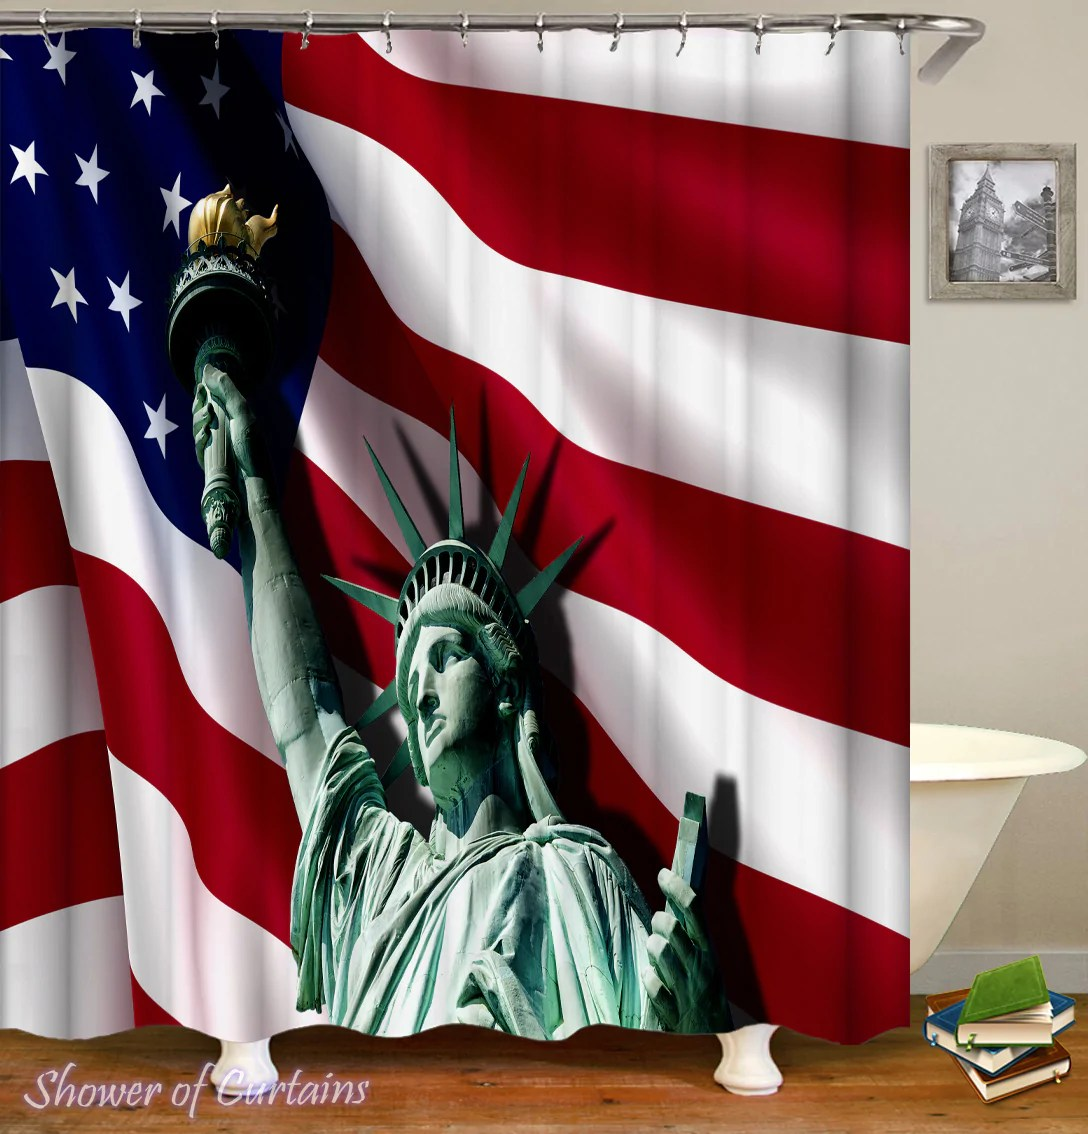 statue of liberty ft the american flag